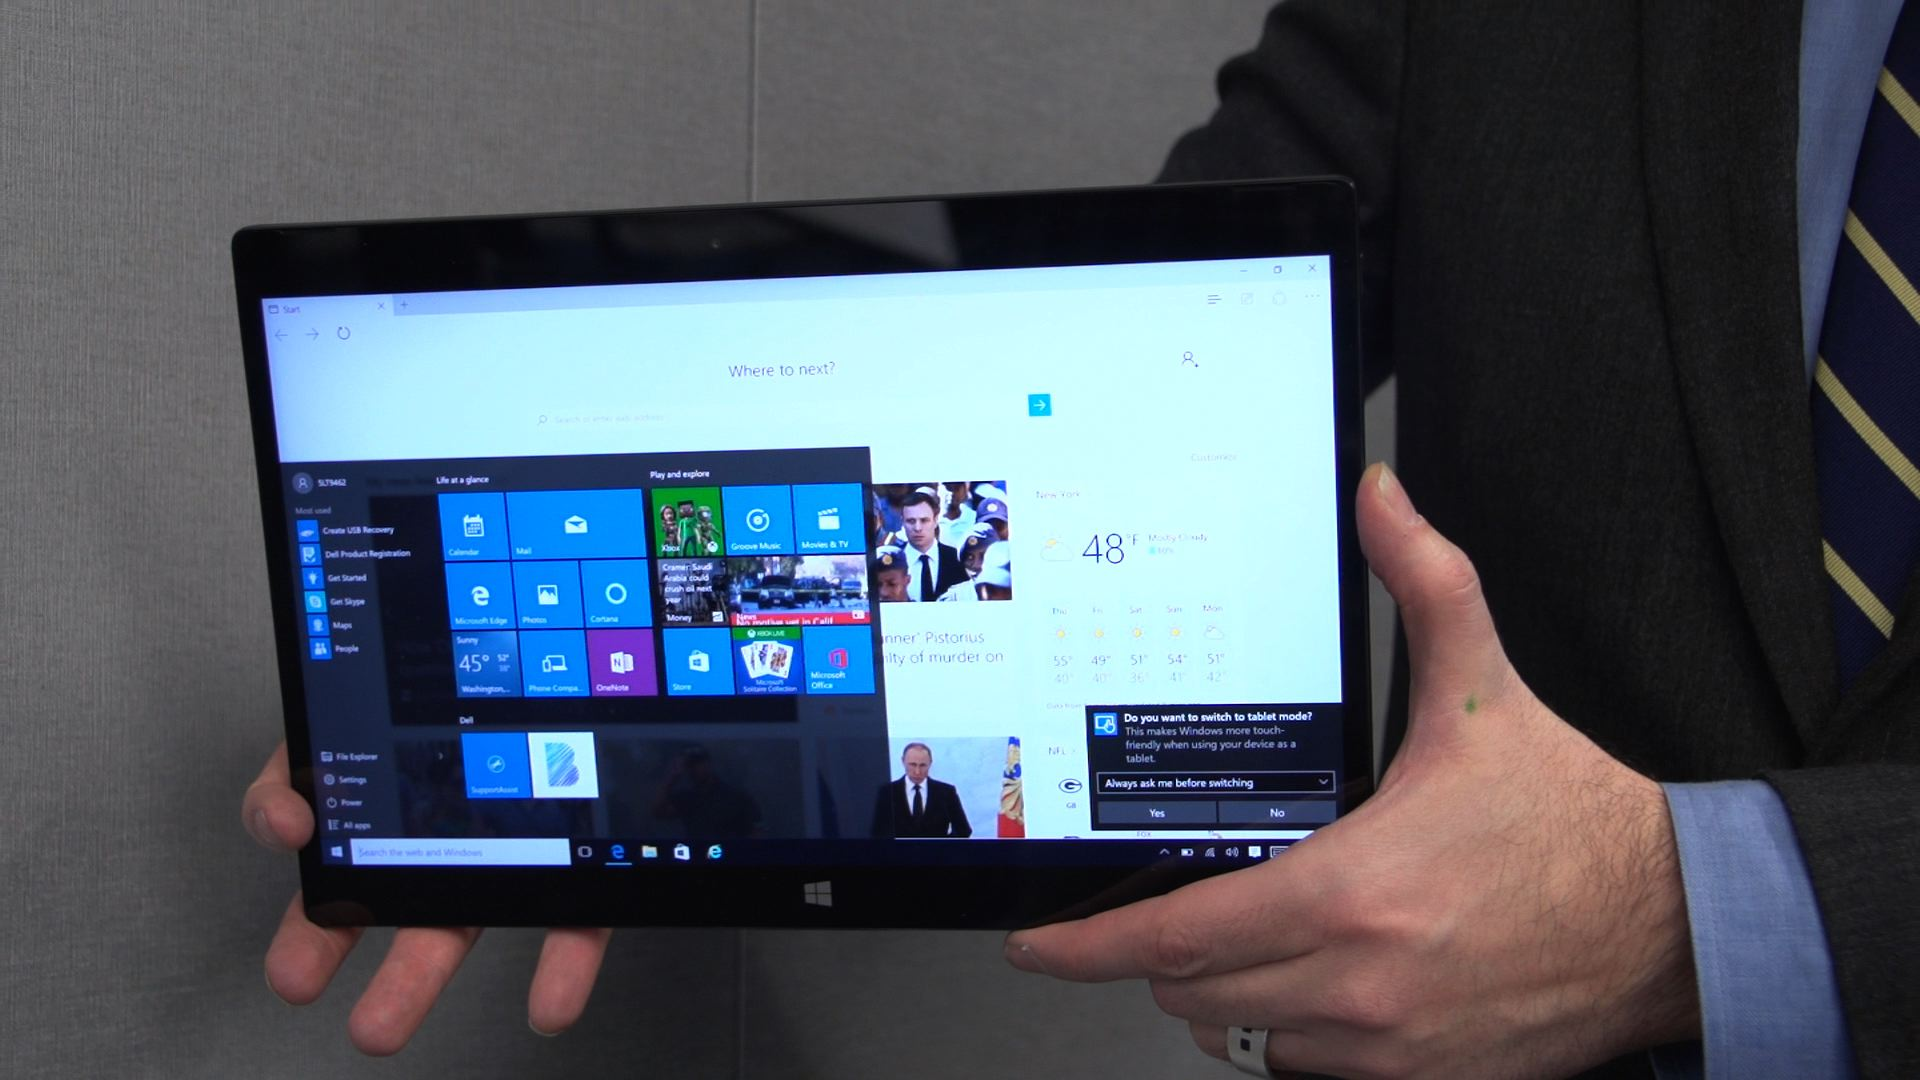 Video: A slim Dell tablet with hassle-free keyboards